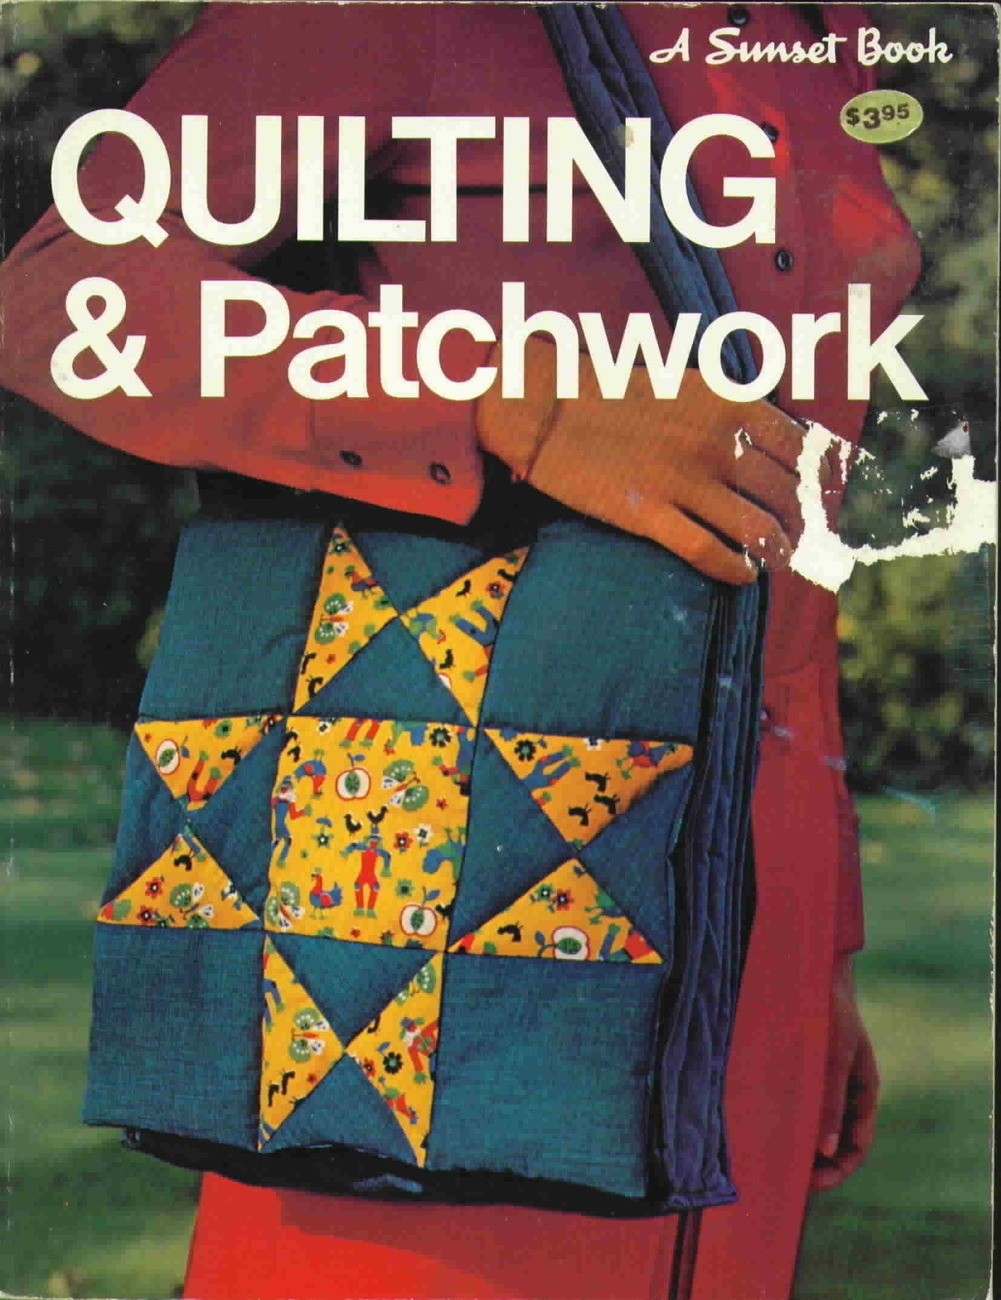 Vintage Quilting and Patchwork A Sunset Book 1973